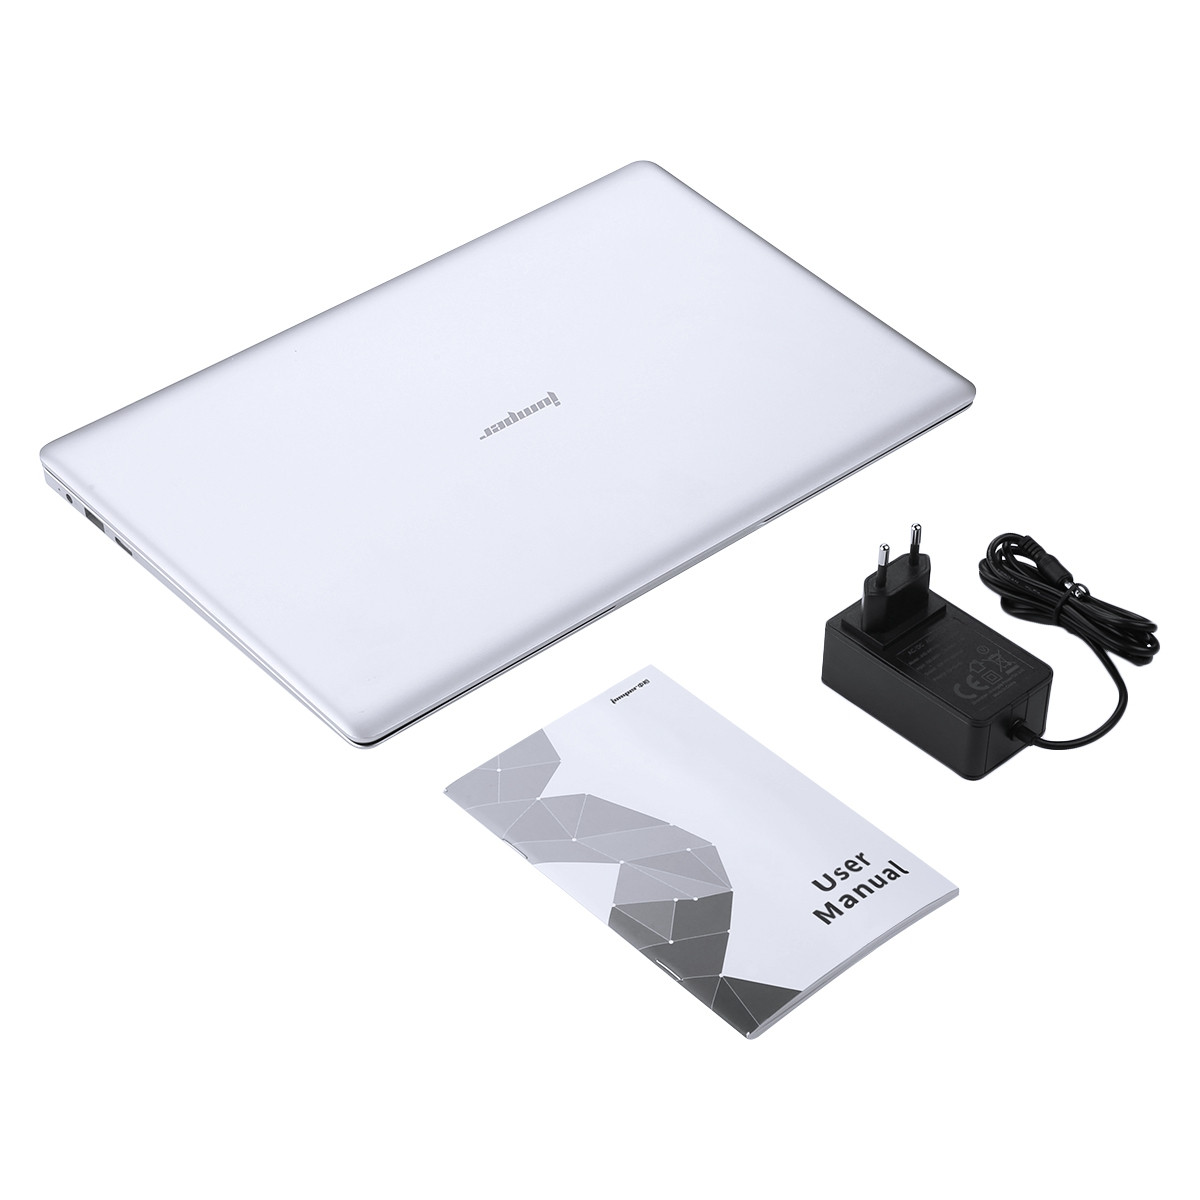 Jumper EZbook S4 Notebook 14.0 inch Windows 10 Home Version Gemini Lake N4100 Quad Core 1.1GHz 8GB RAM 256GB SSD 0.3MP Front Camera Dual Band 4600mAh Built-in